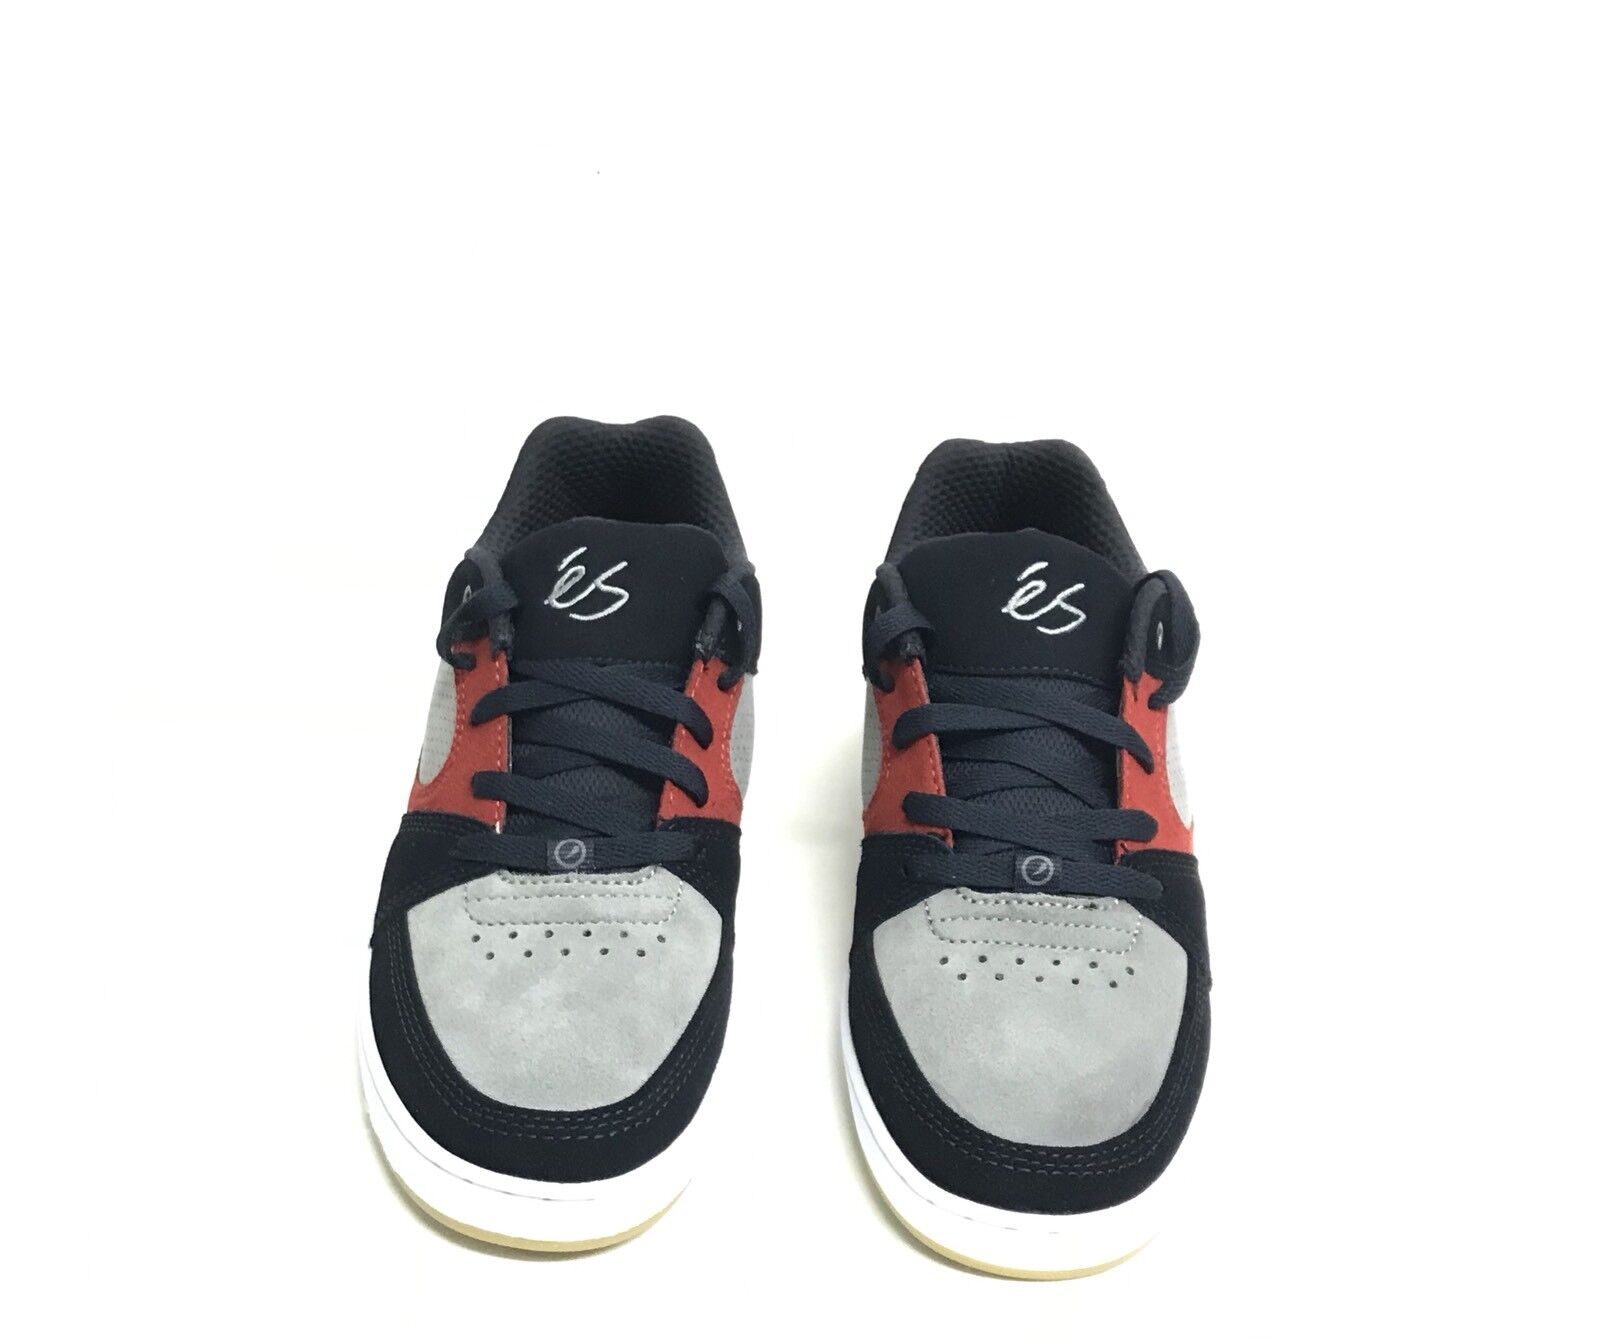 Es Skateboard Shoes Accel Slim Navy Gray Red New Color uomo's 9.5 Scarpe classiche da uomo